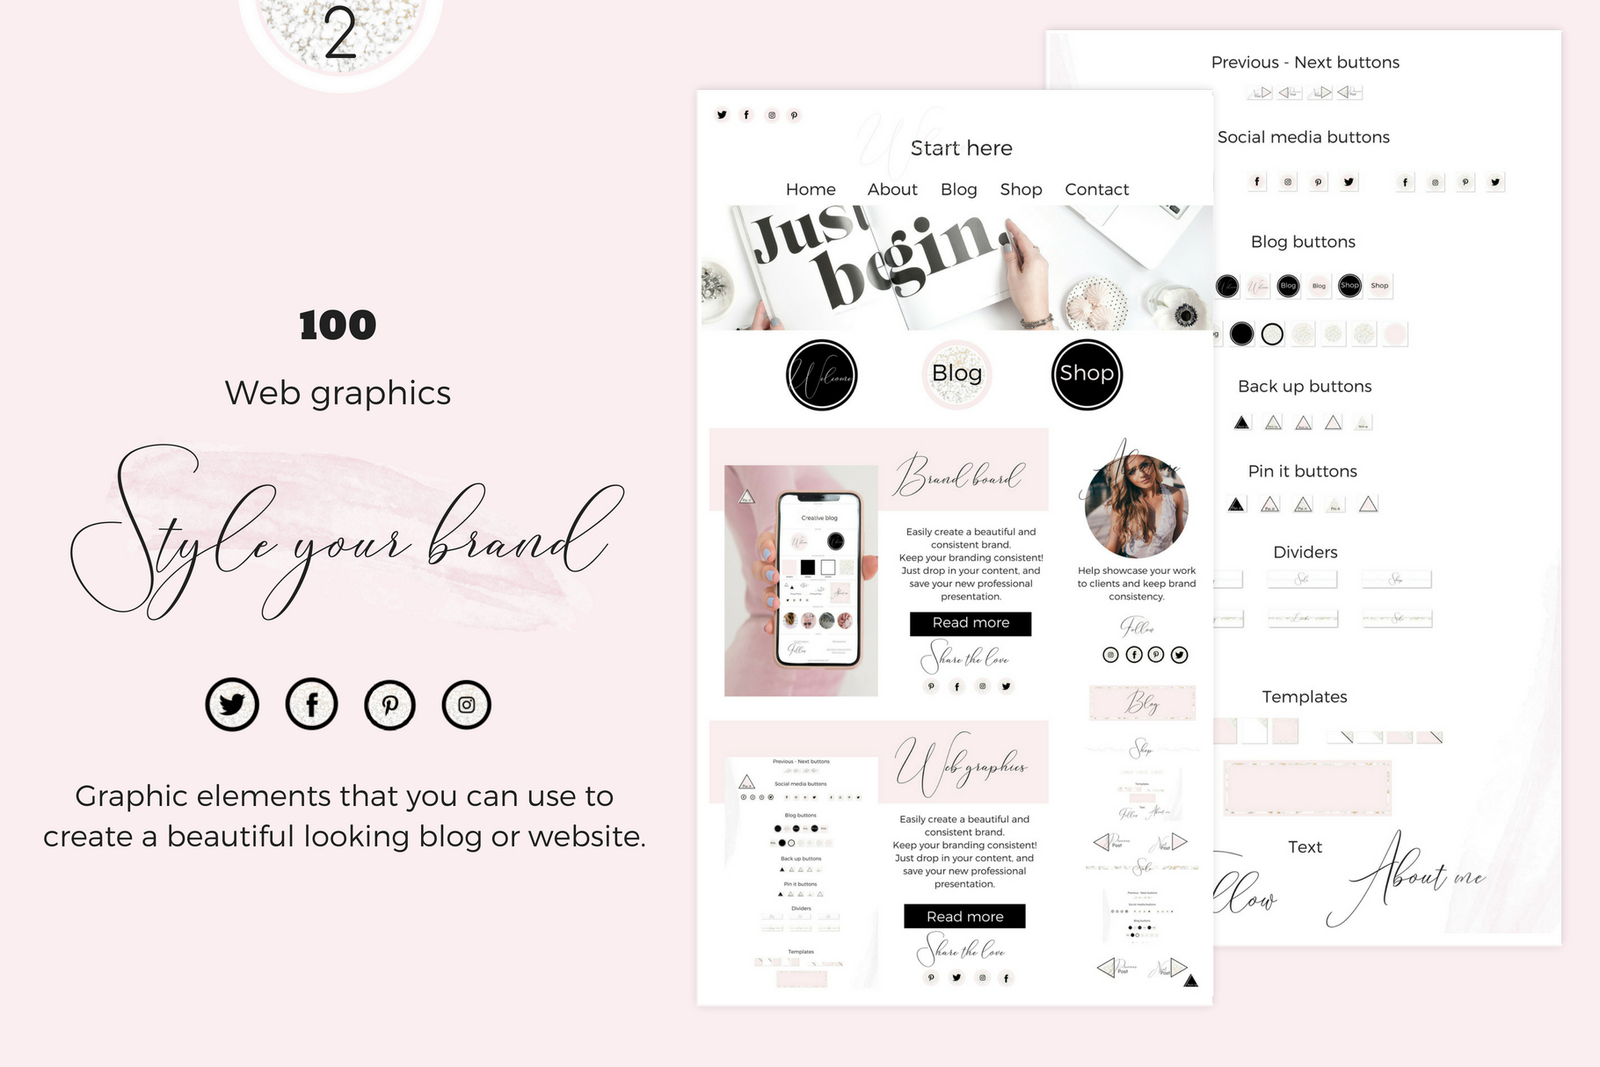 Web graphics - Pink, black, marblegold